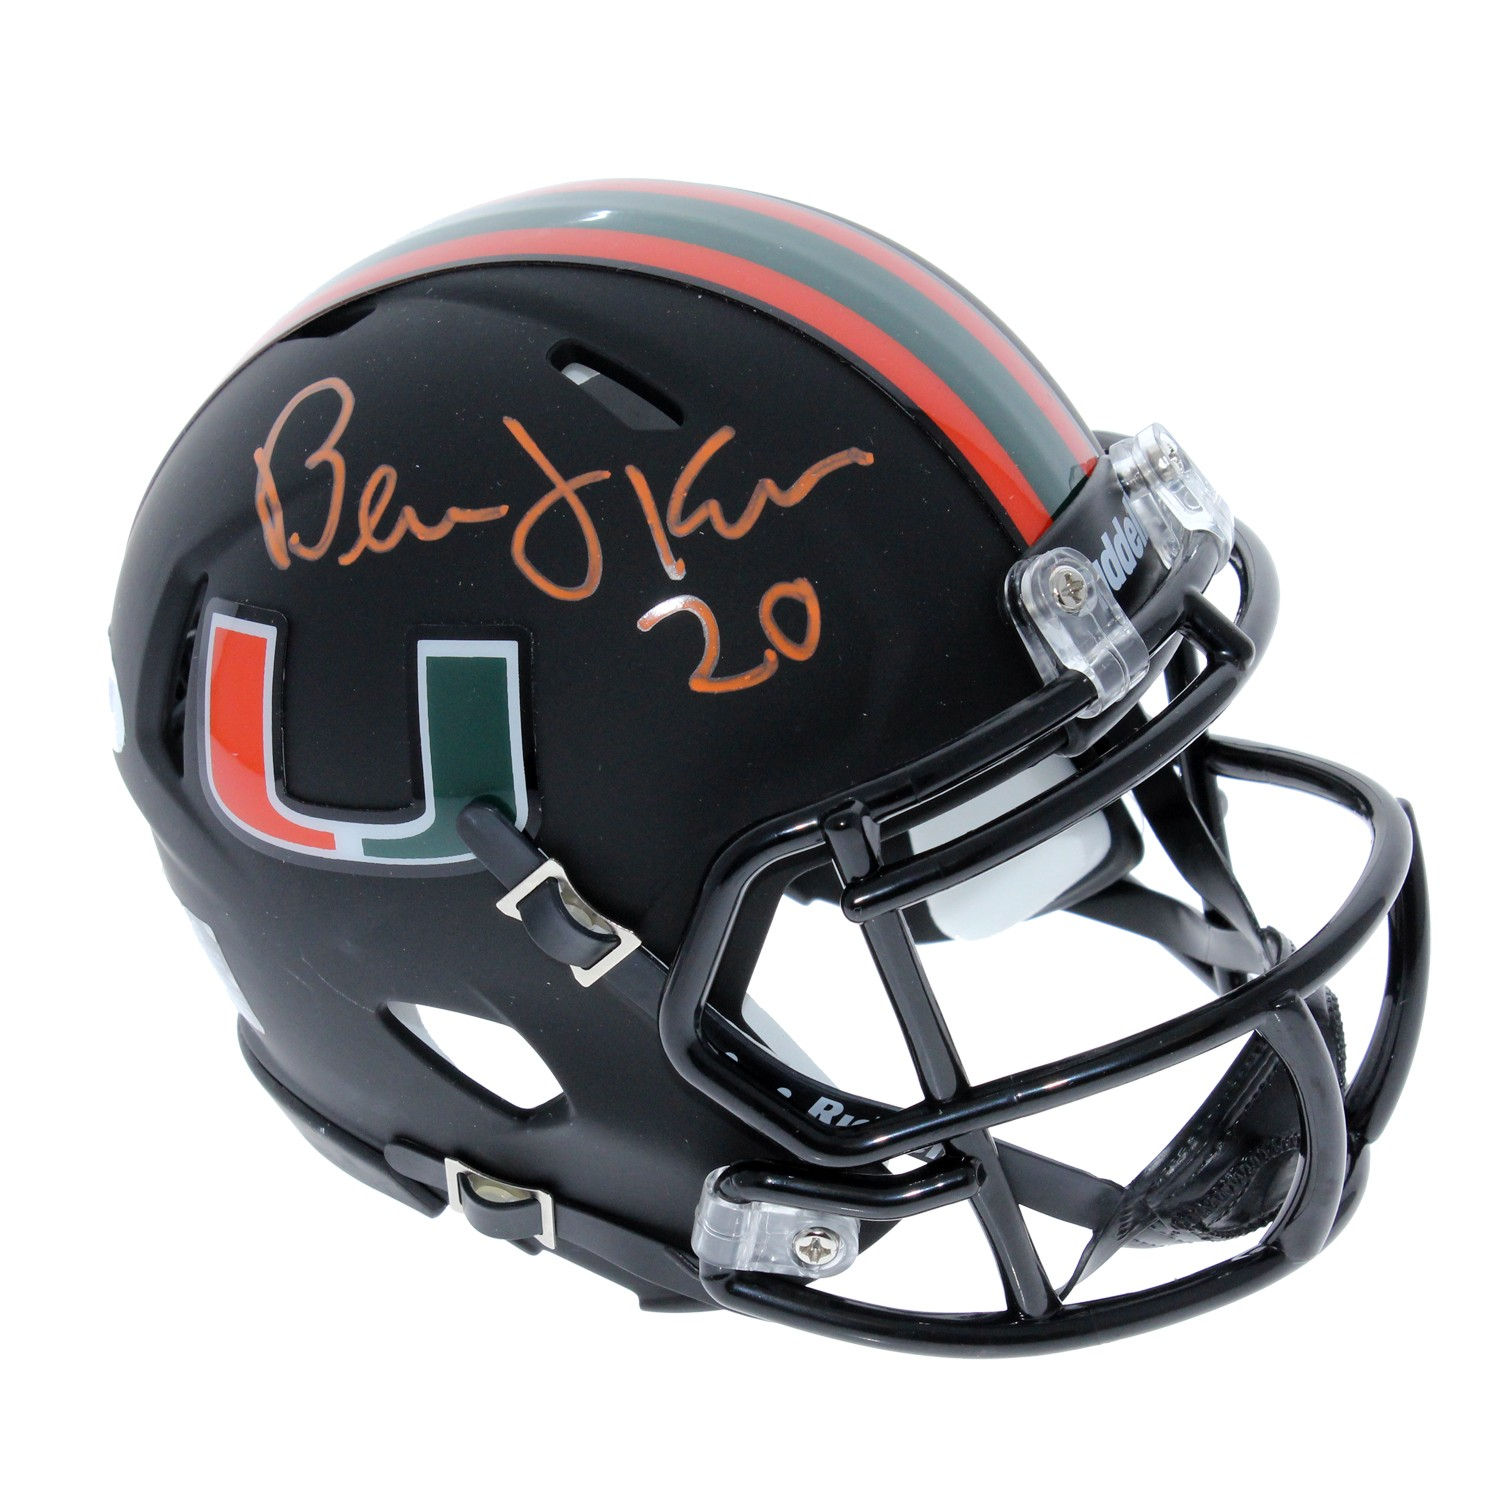 official photos 49763 85dff Bernie Kosar Miami Hurricanes Autographed Signed Riddell ...